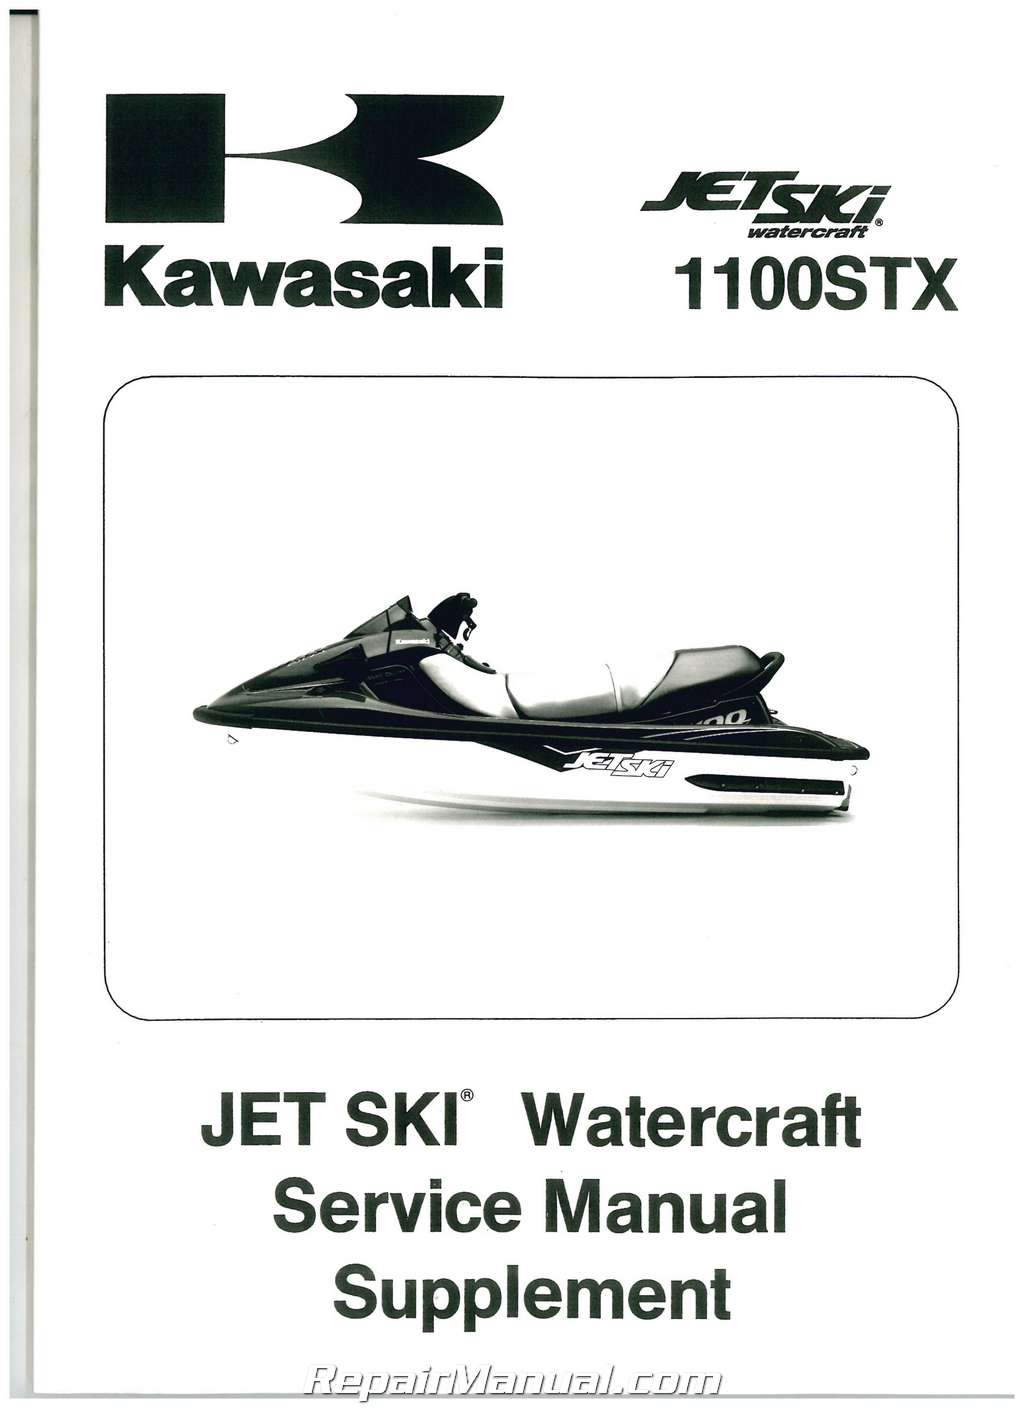 1998 – 1999 Kawasaki 1100 STX Jet Ski Factory Service Manual Supplement